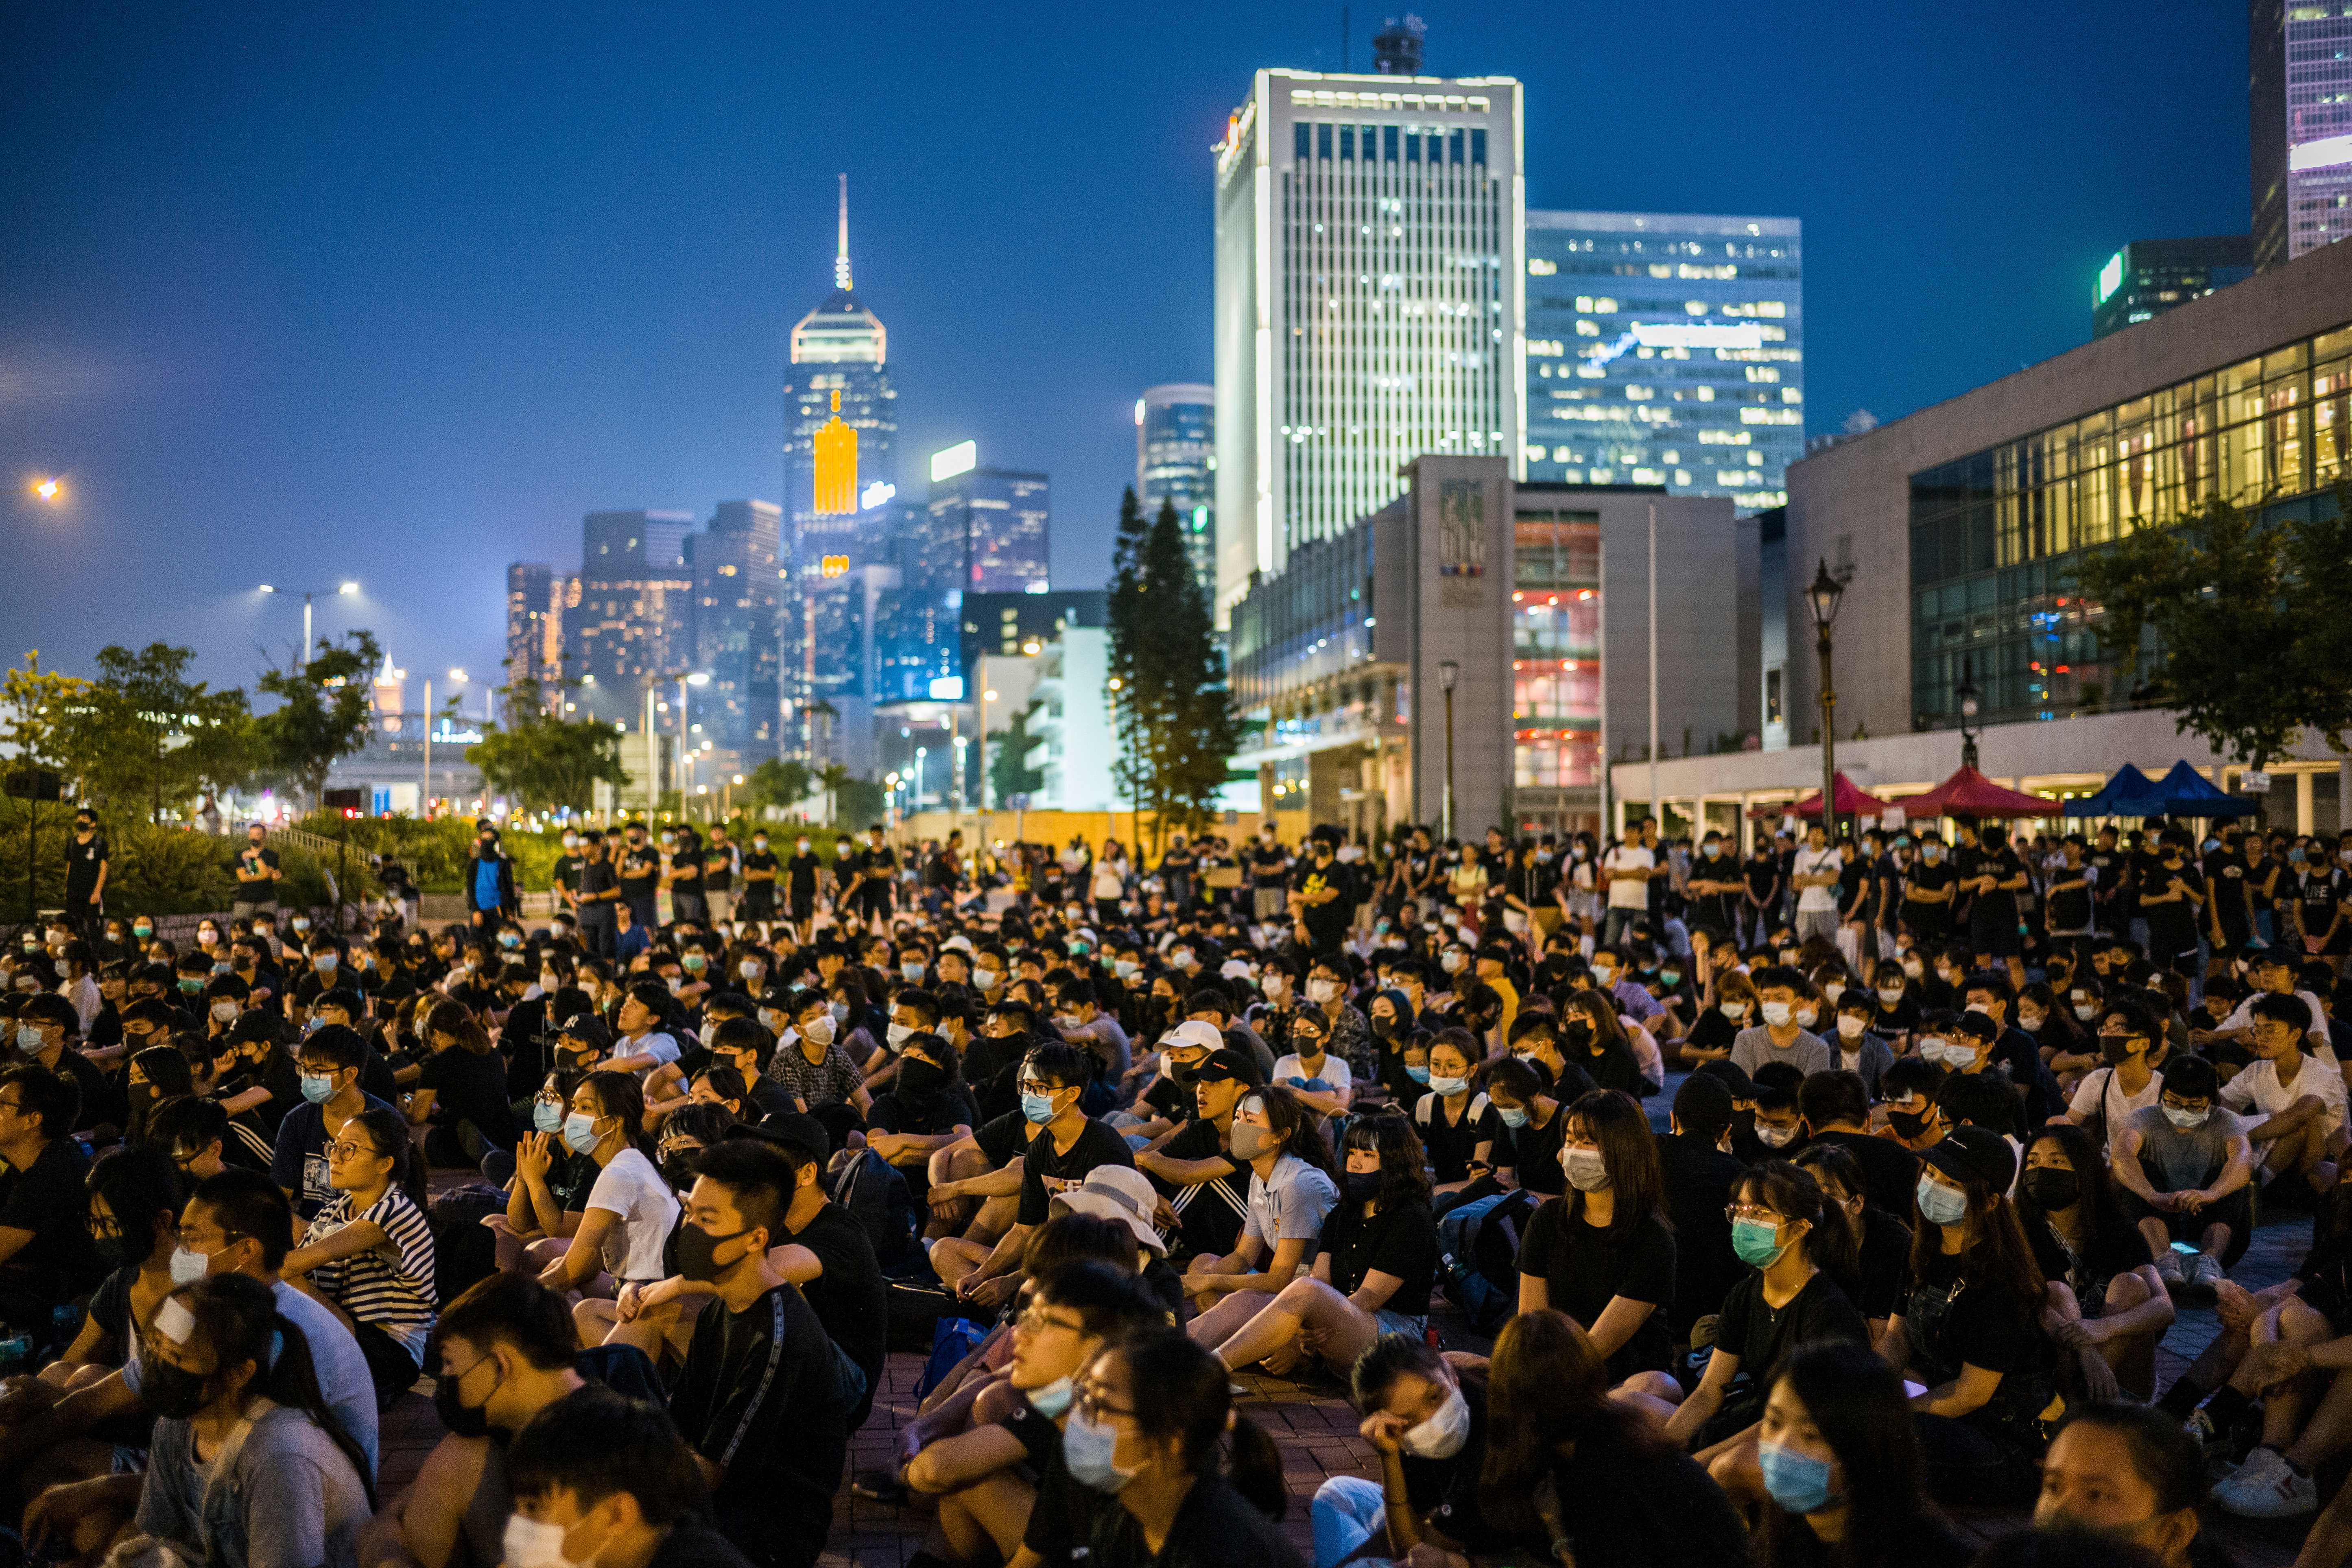 Hong Kong is still 'a very good proxy' for Chinese assets despite the unrest, says an economist